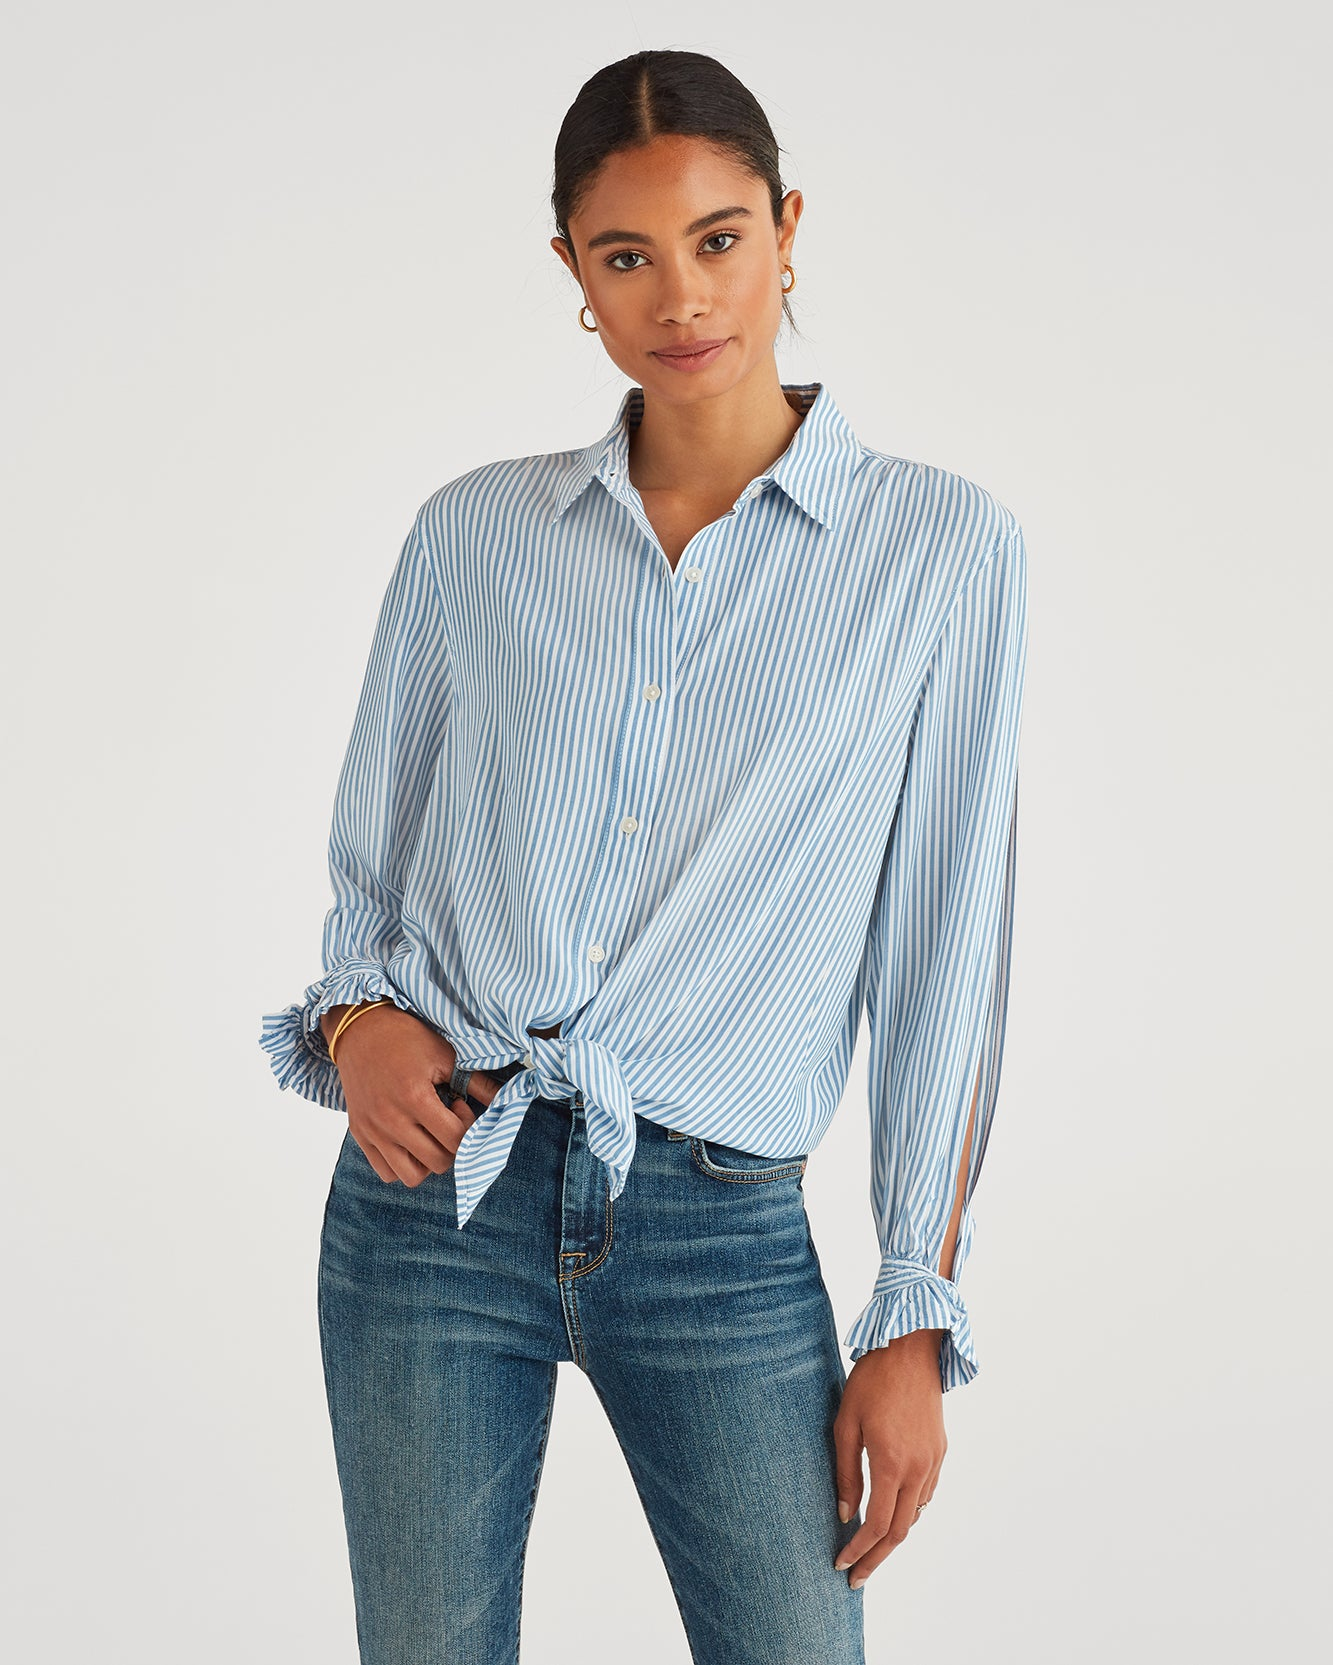 Image of Split Sleeve Shirt in Blue and White Stripe